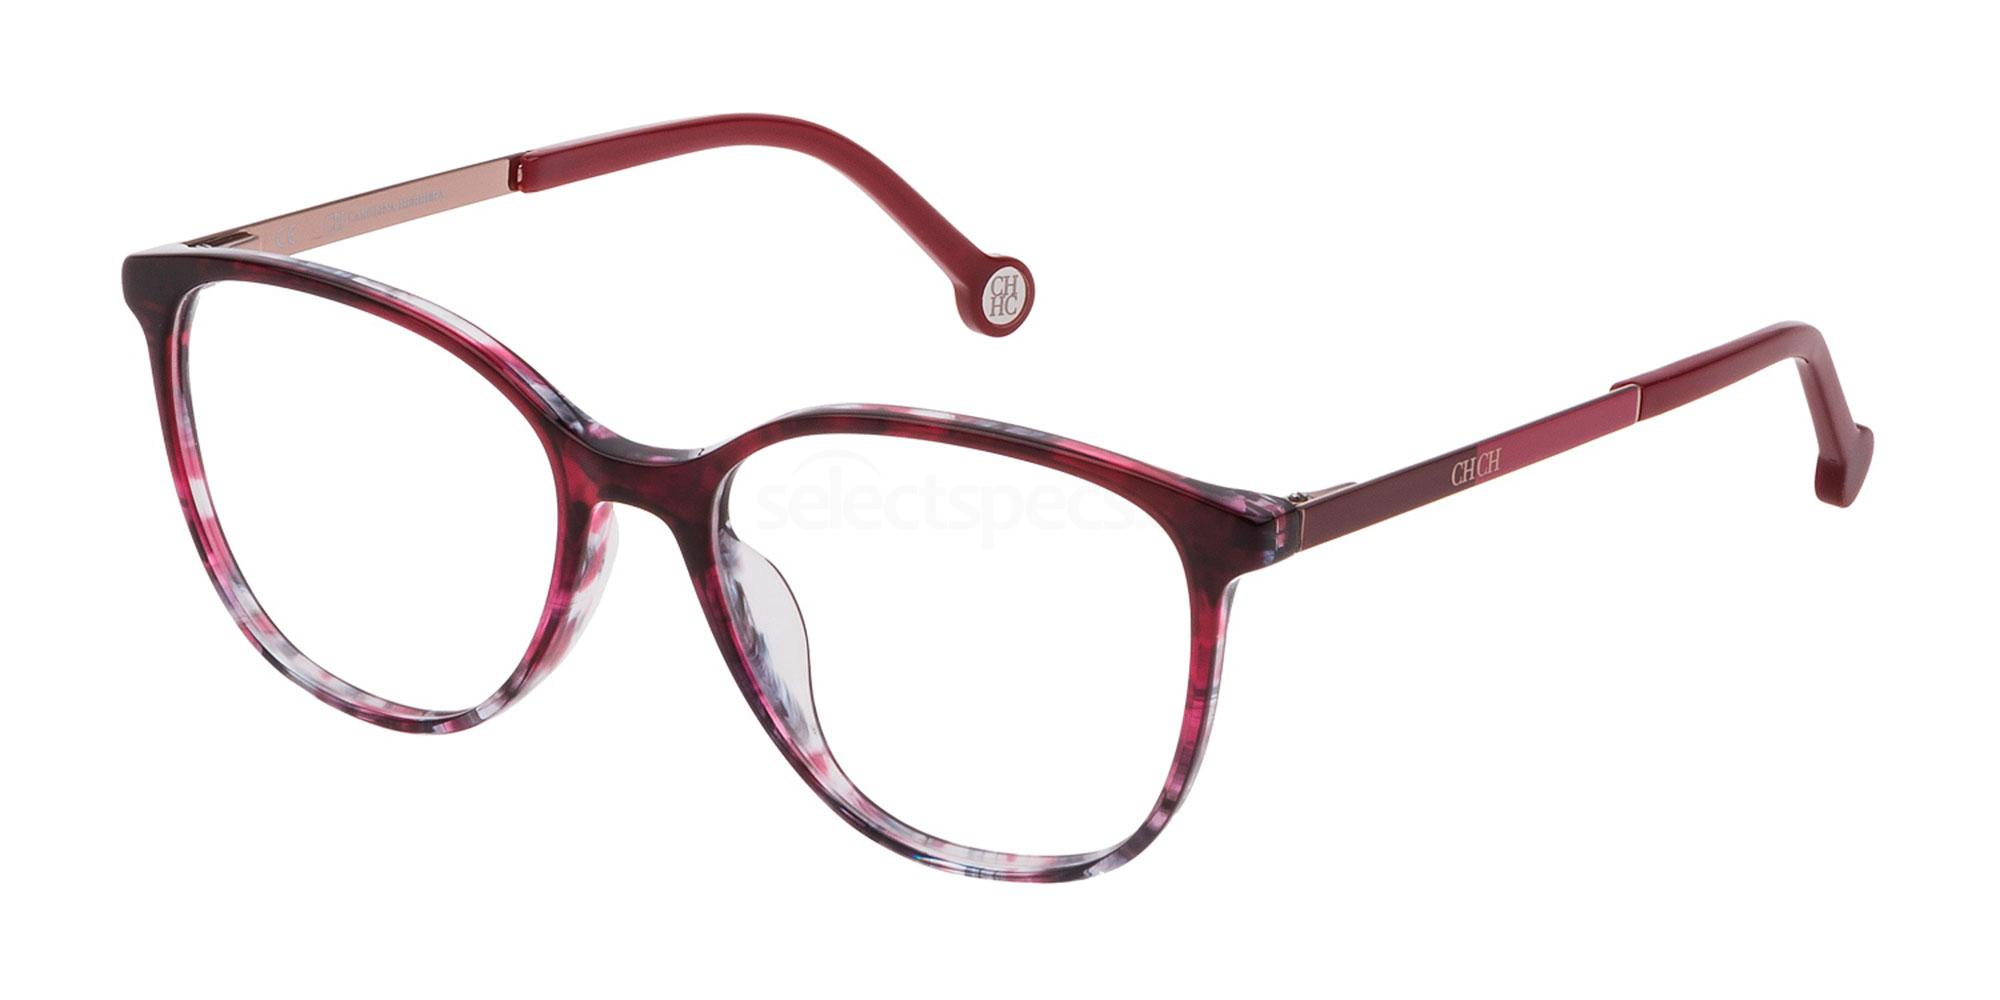 02AS VHE819 Glasses, CH Carolina Herrera